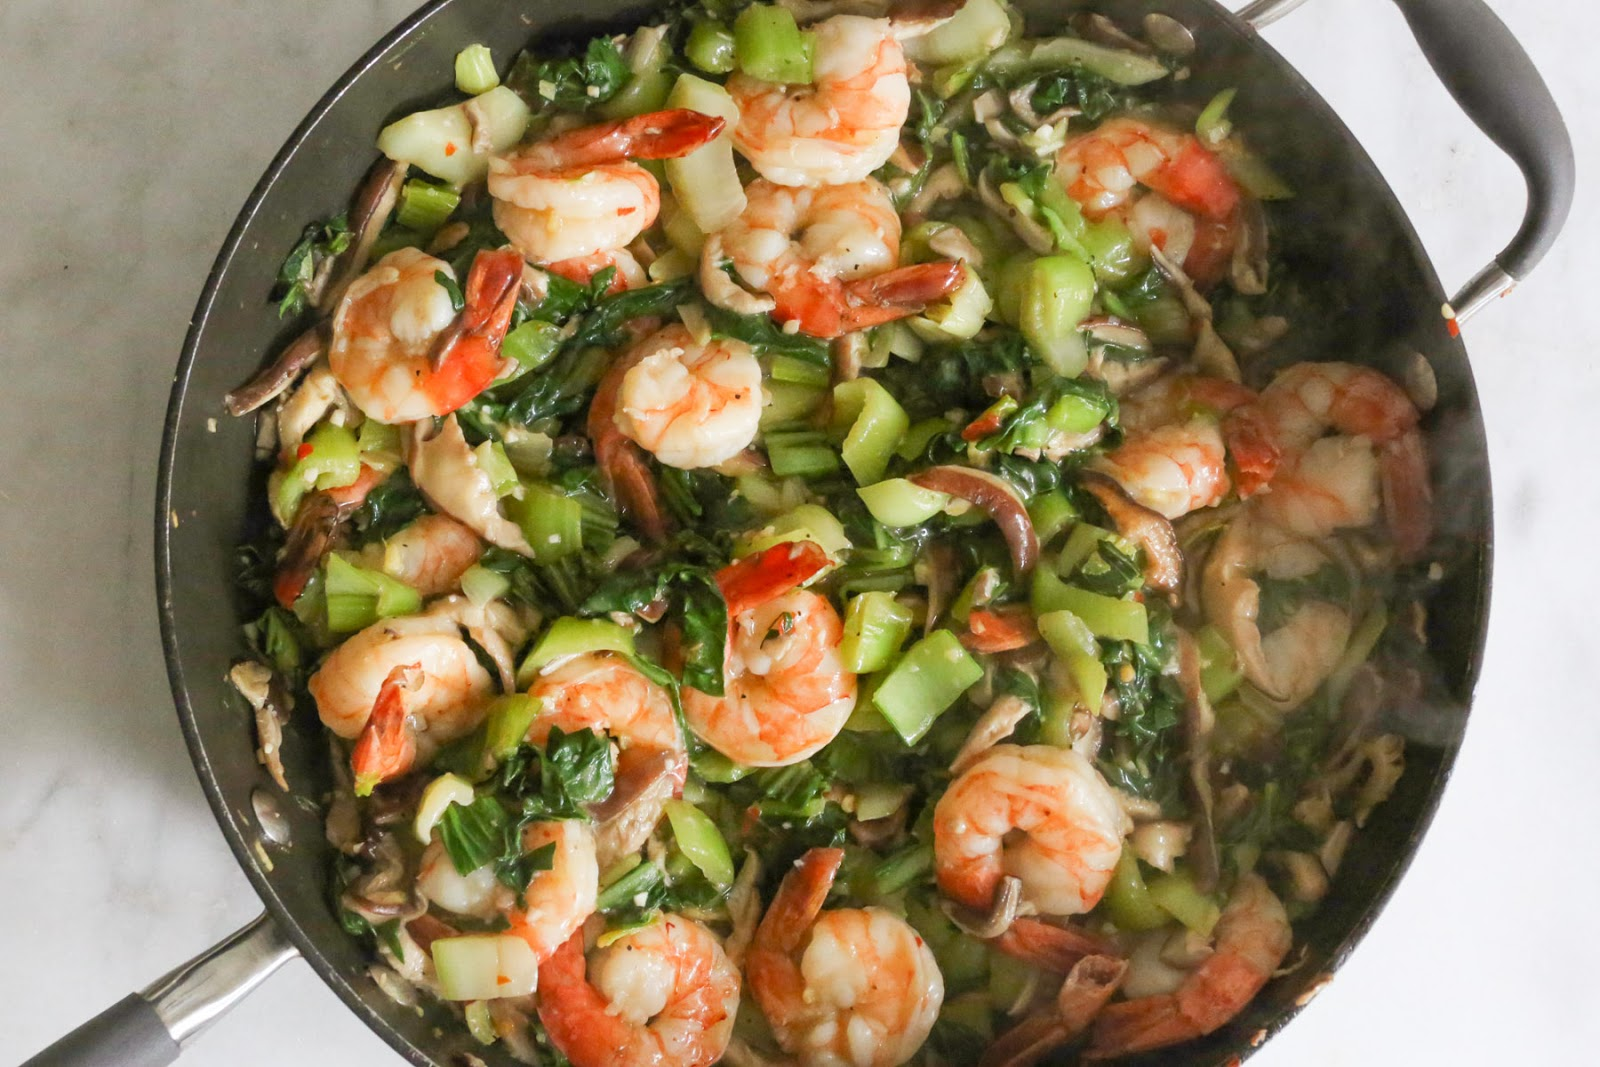 Freshwater Shrimp Suppliers with Best Product Technology - Fresh